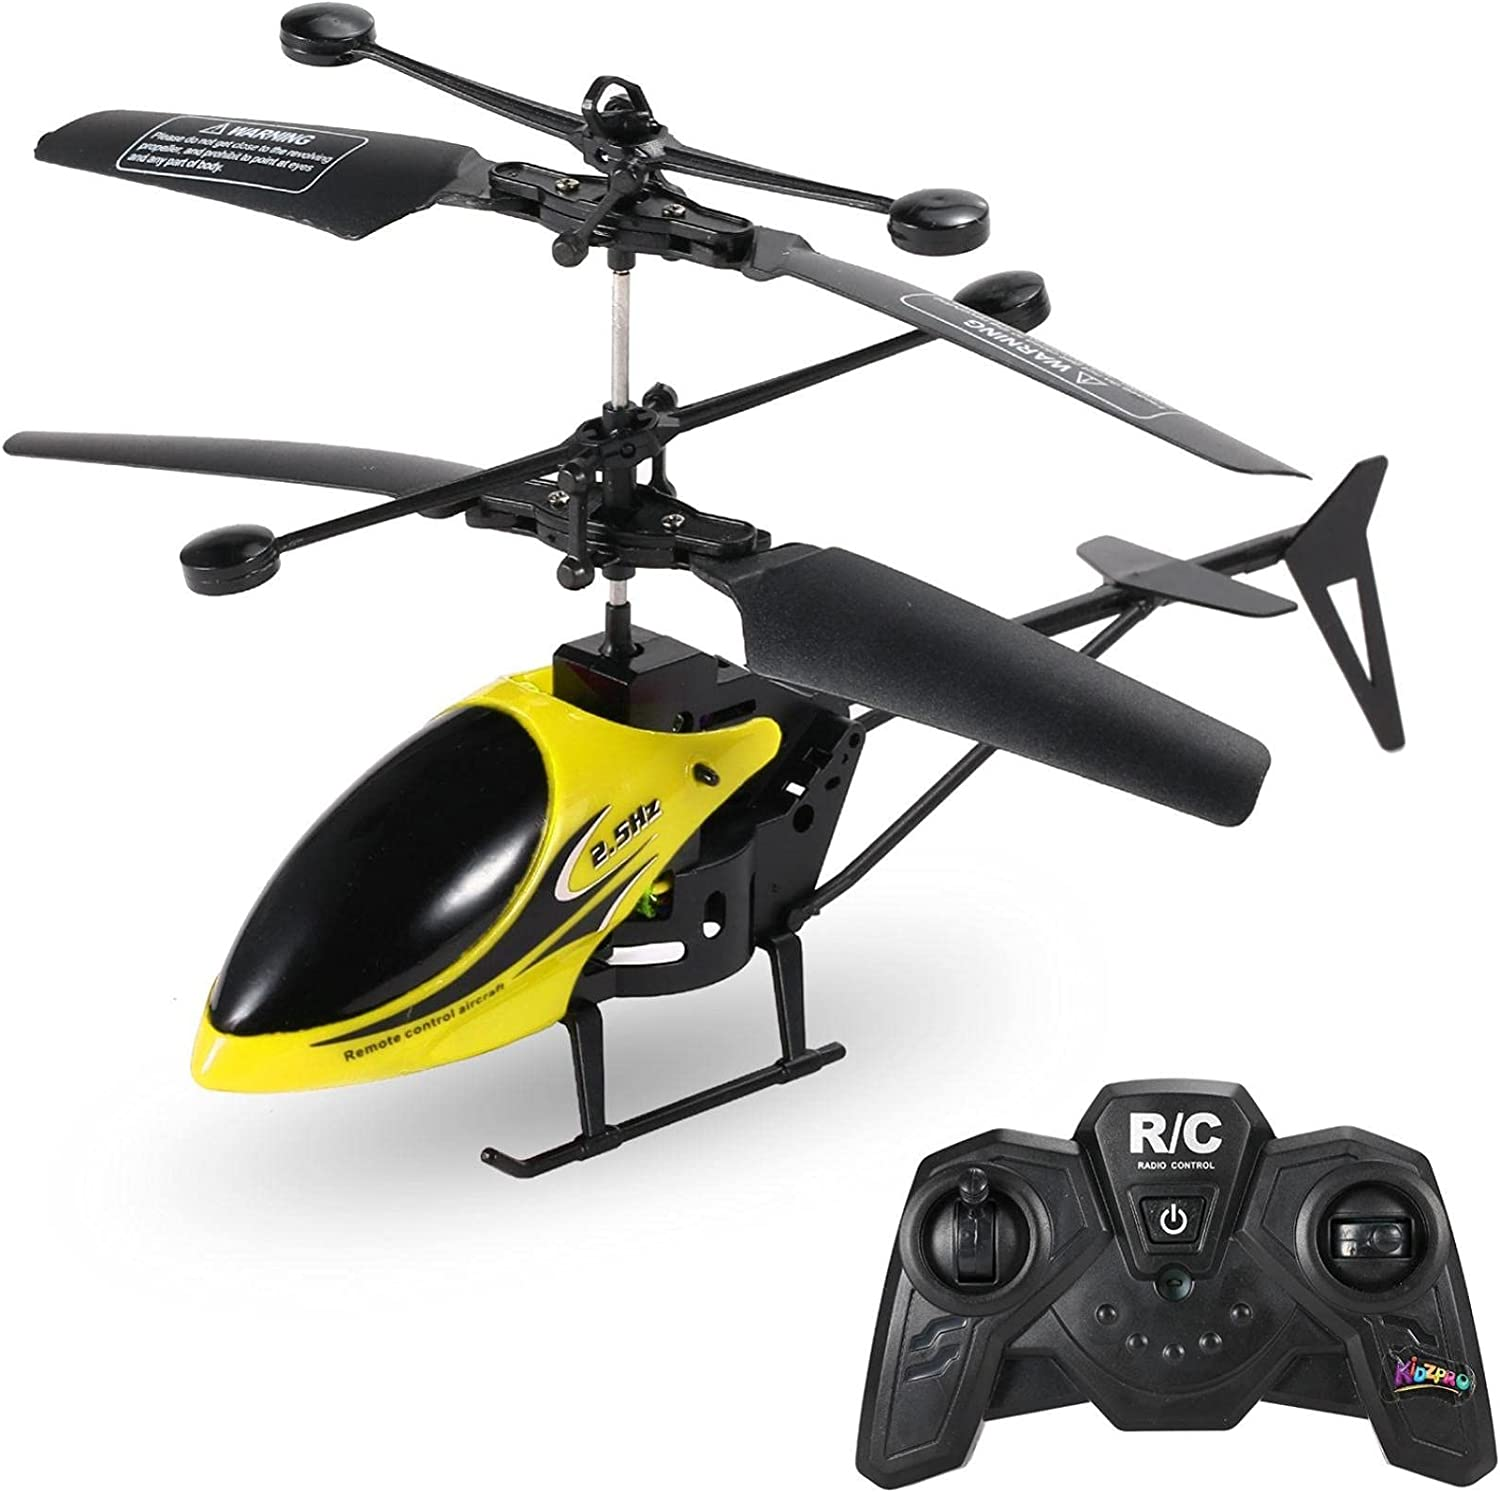 Remote Popularity Seasonal Wrap Introduction Control Helicopter for Toy Helic Boys Kids